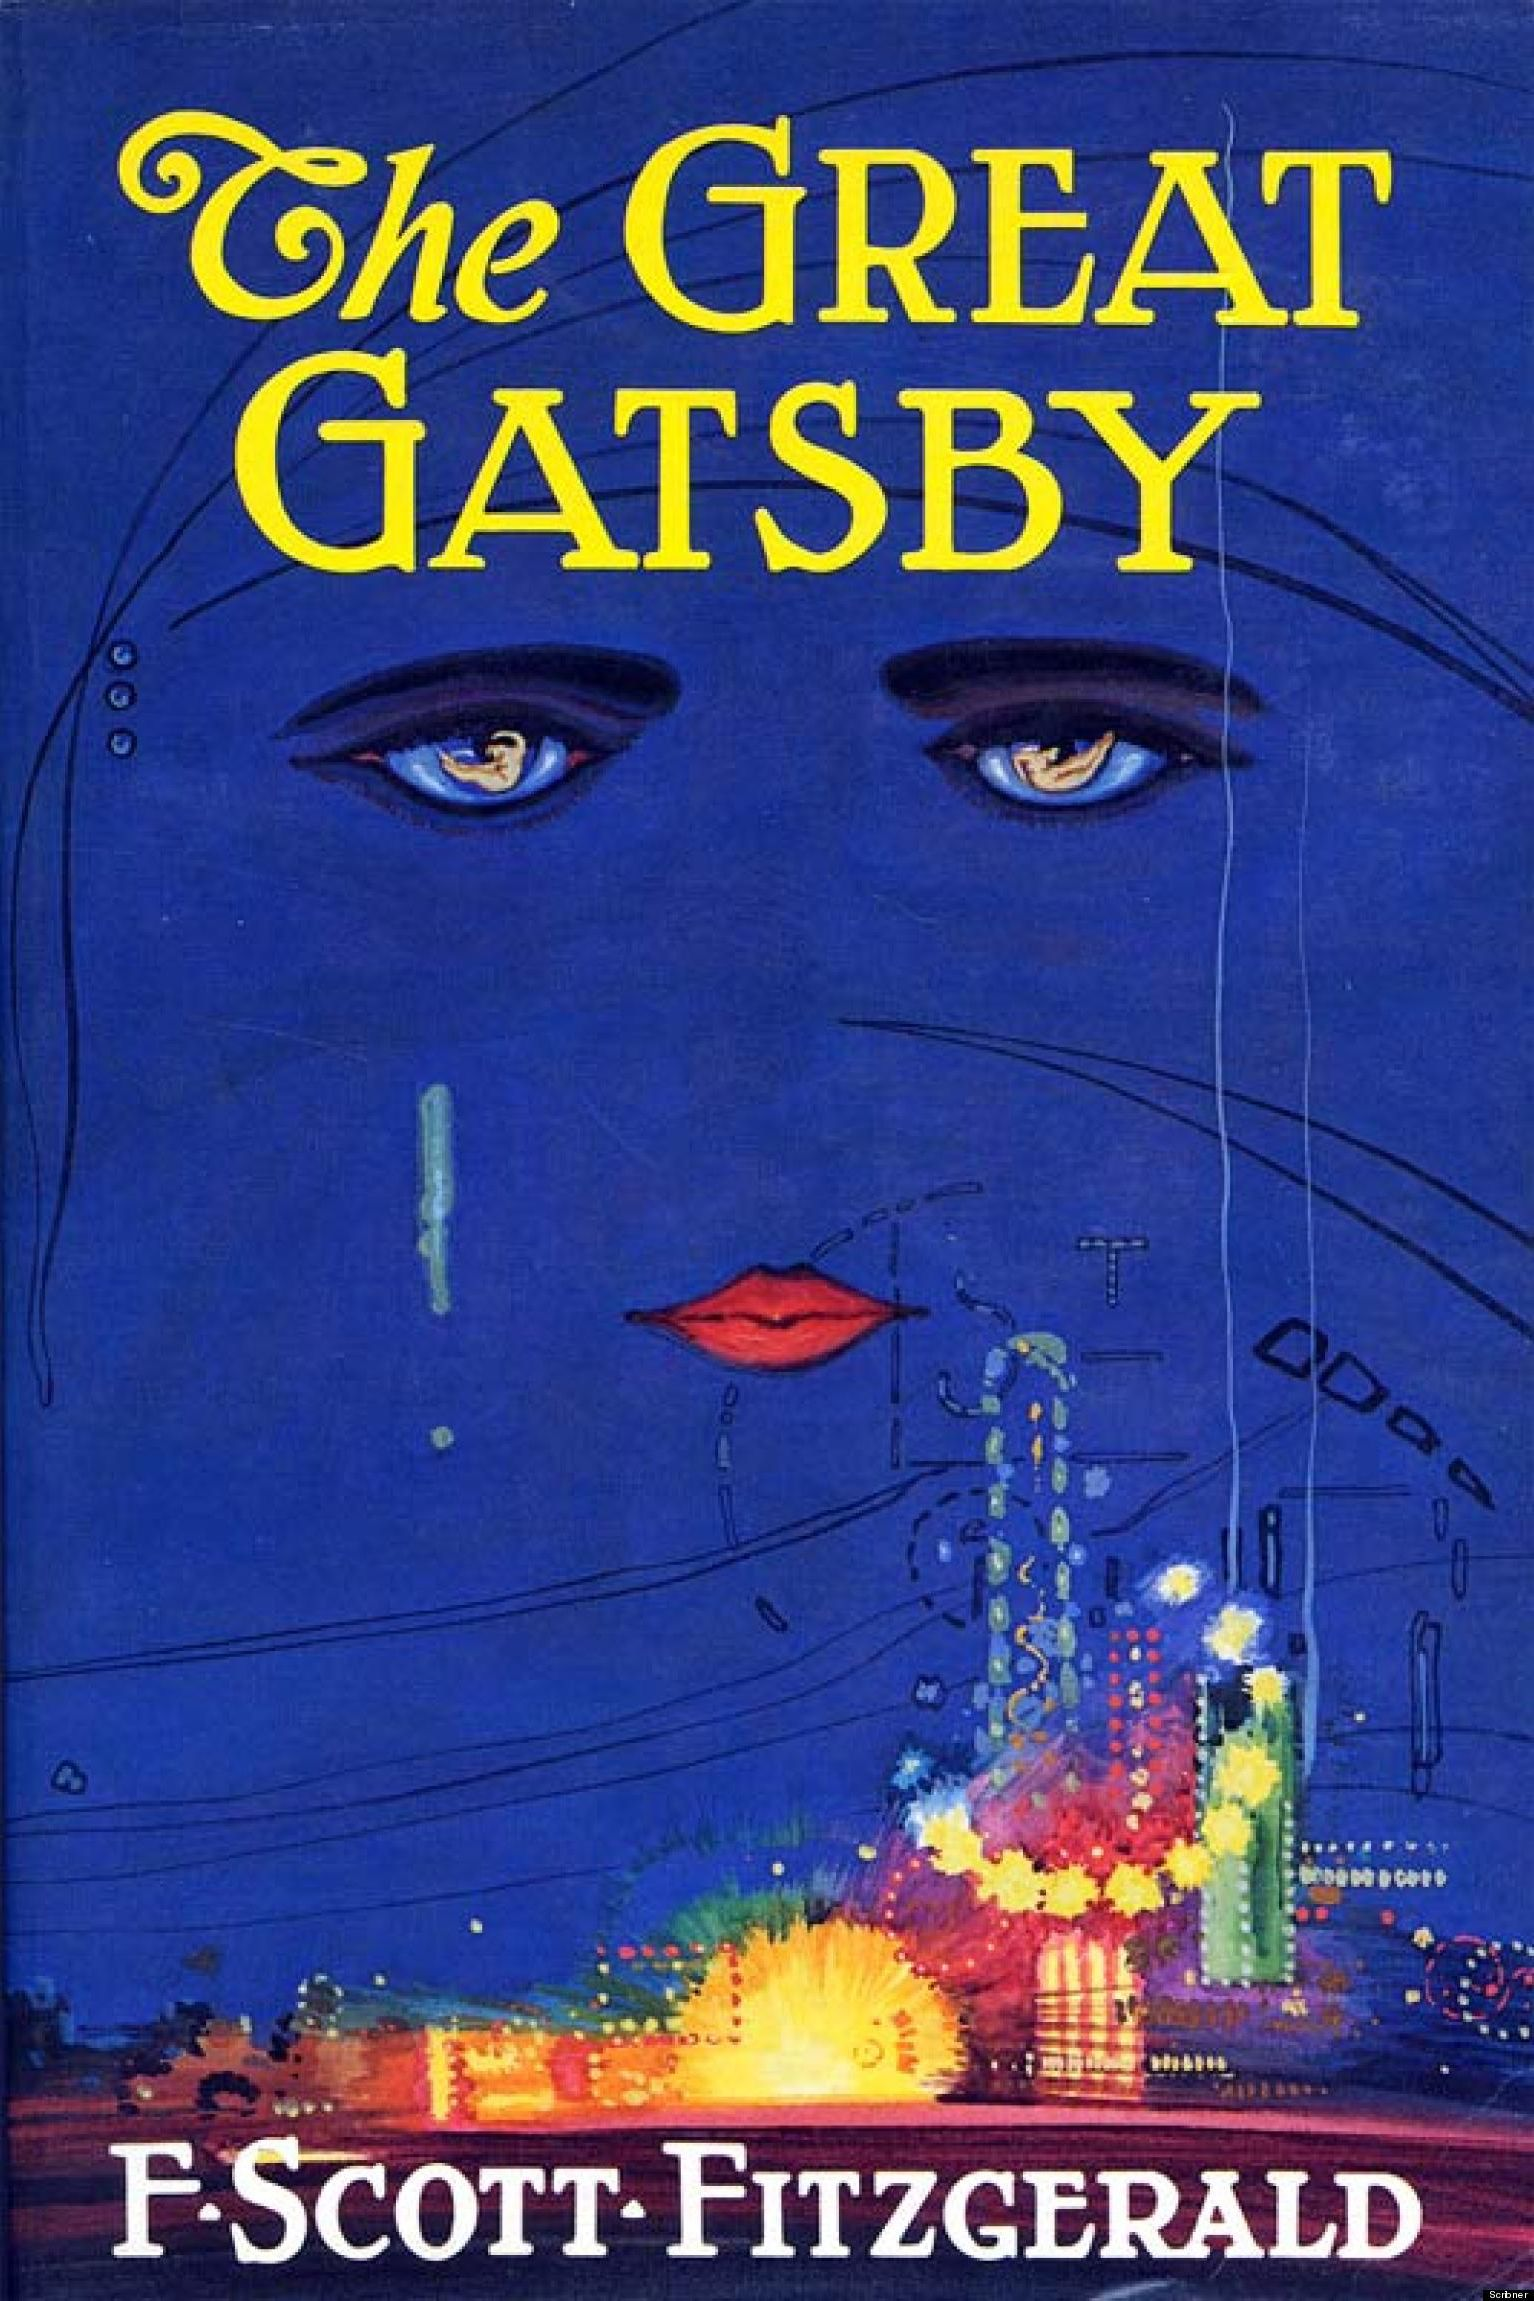 <p>The author's darkly luminous masterpiece: the original novel about the American Dream—and the most beautifully written, ever.</p><p>–MK</p>